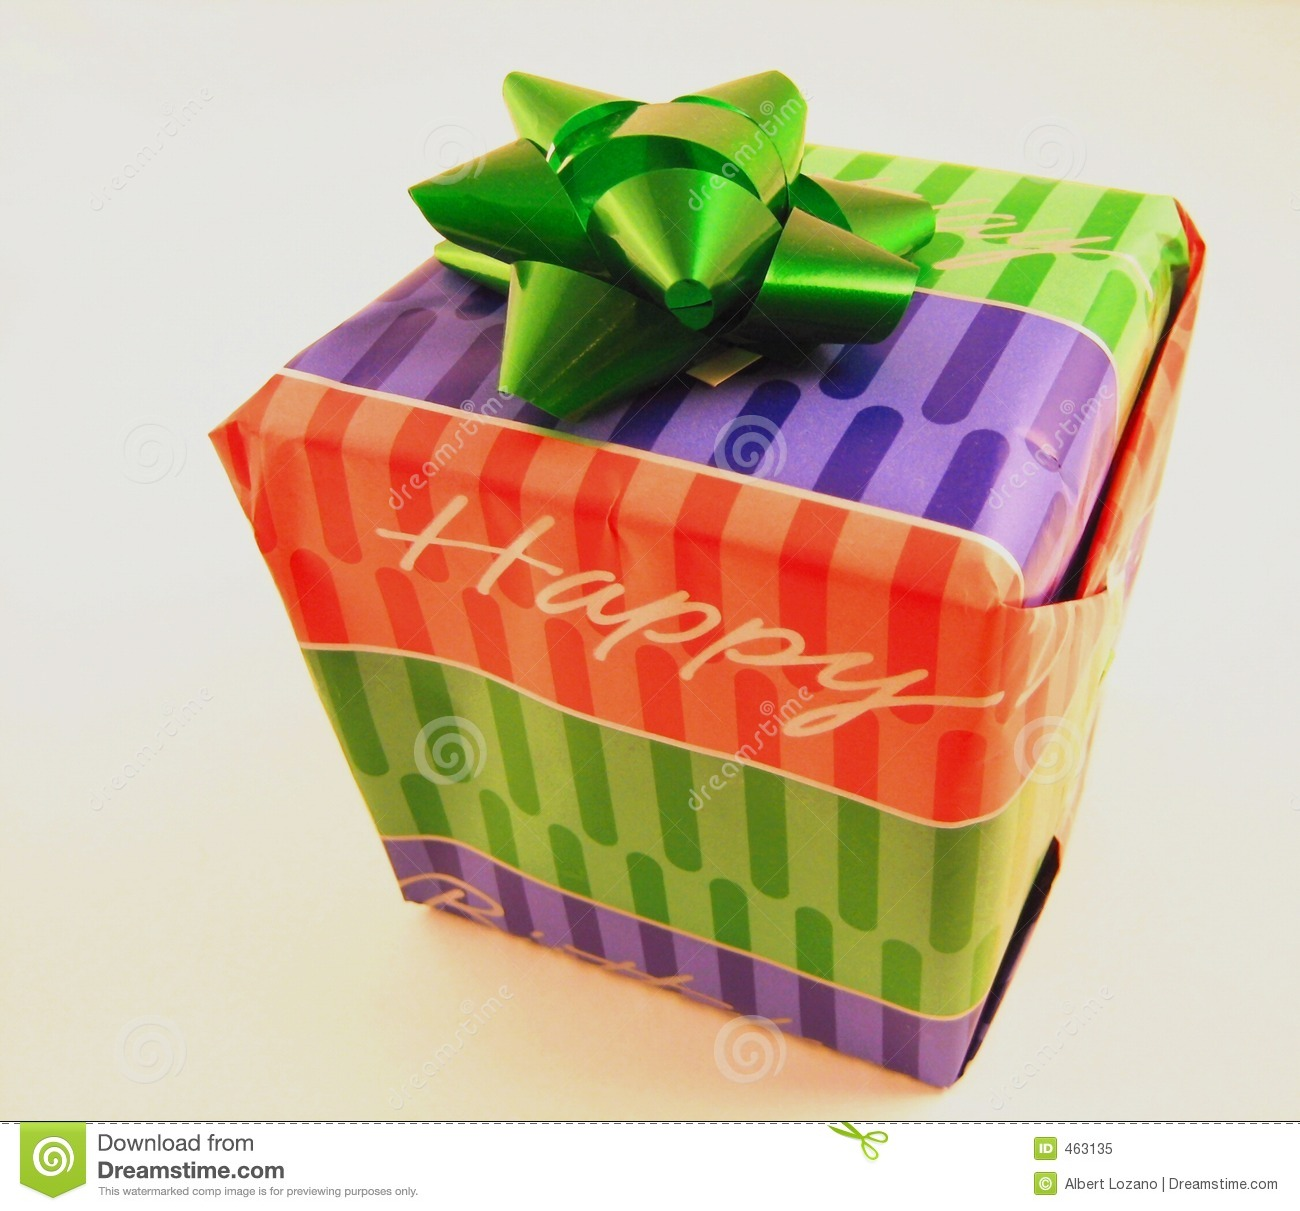 Birthday Gift Stock Image. Image Of Giving, Excitement